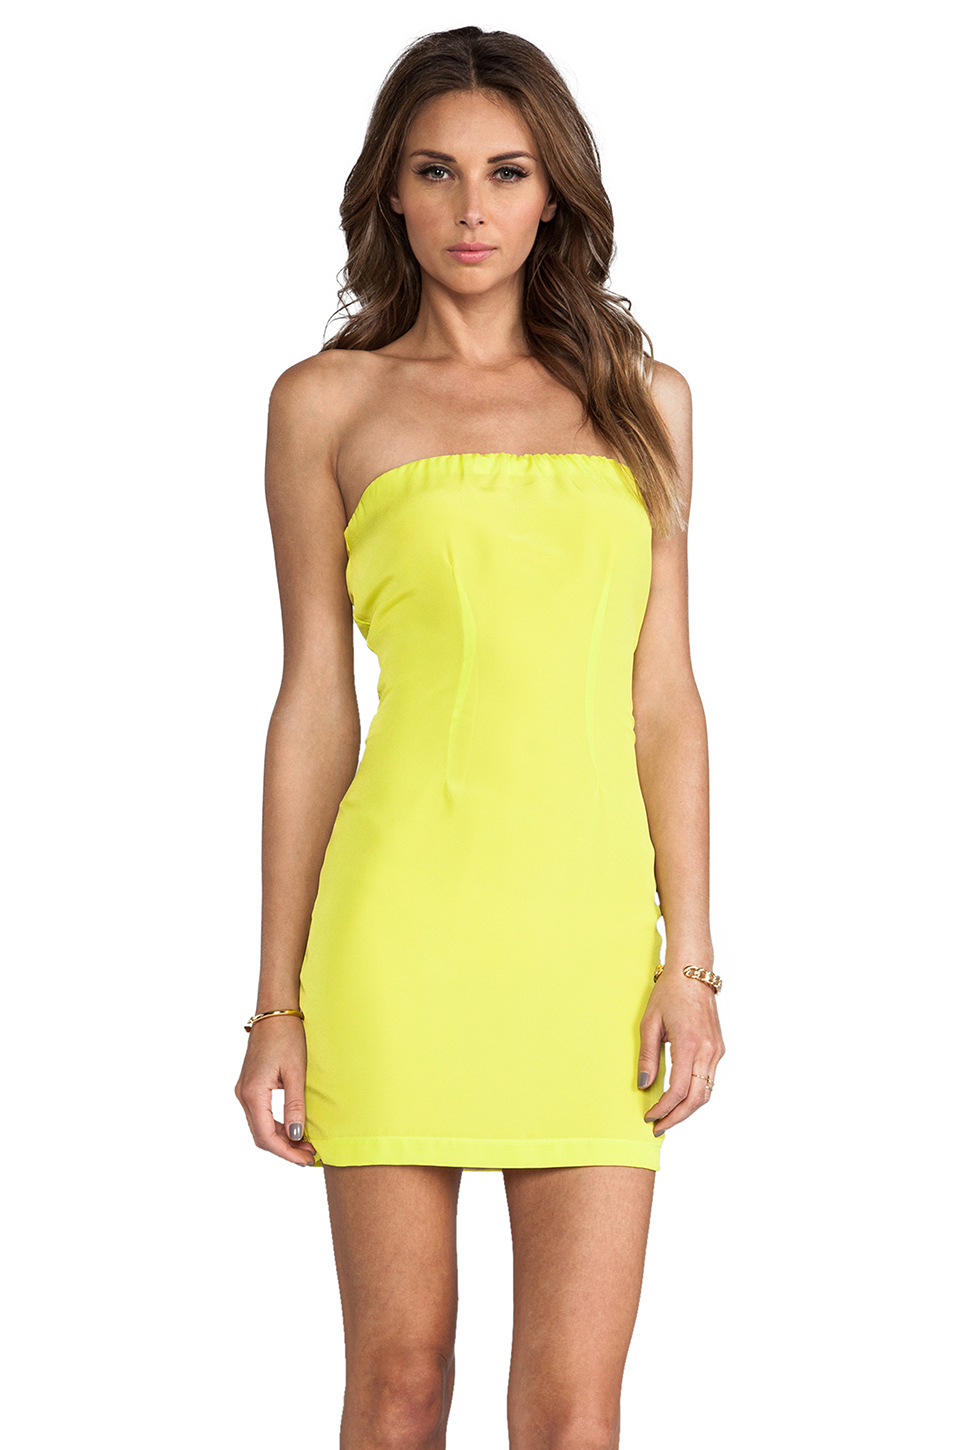 401f7377cd Lyst - Naven Neon Collection Tube Dress in Yellow